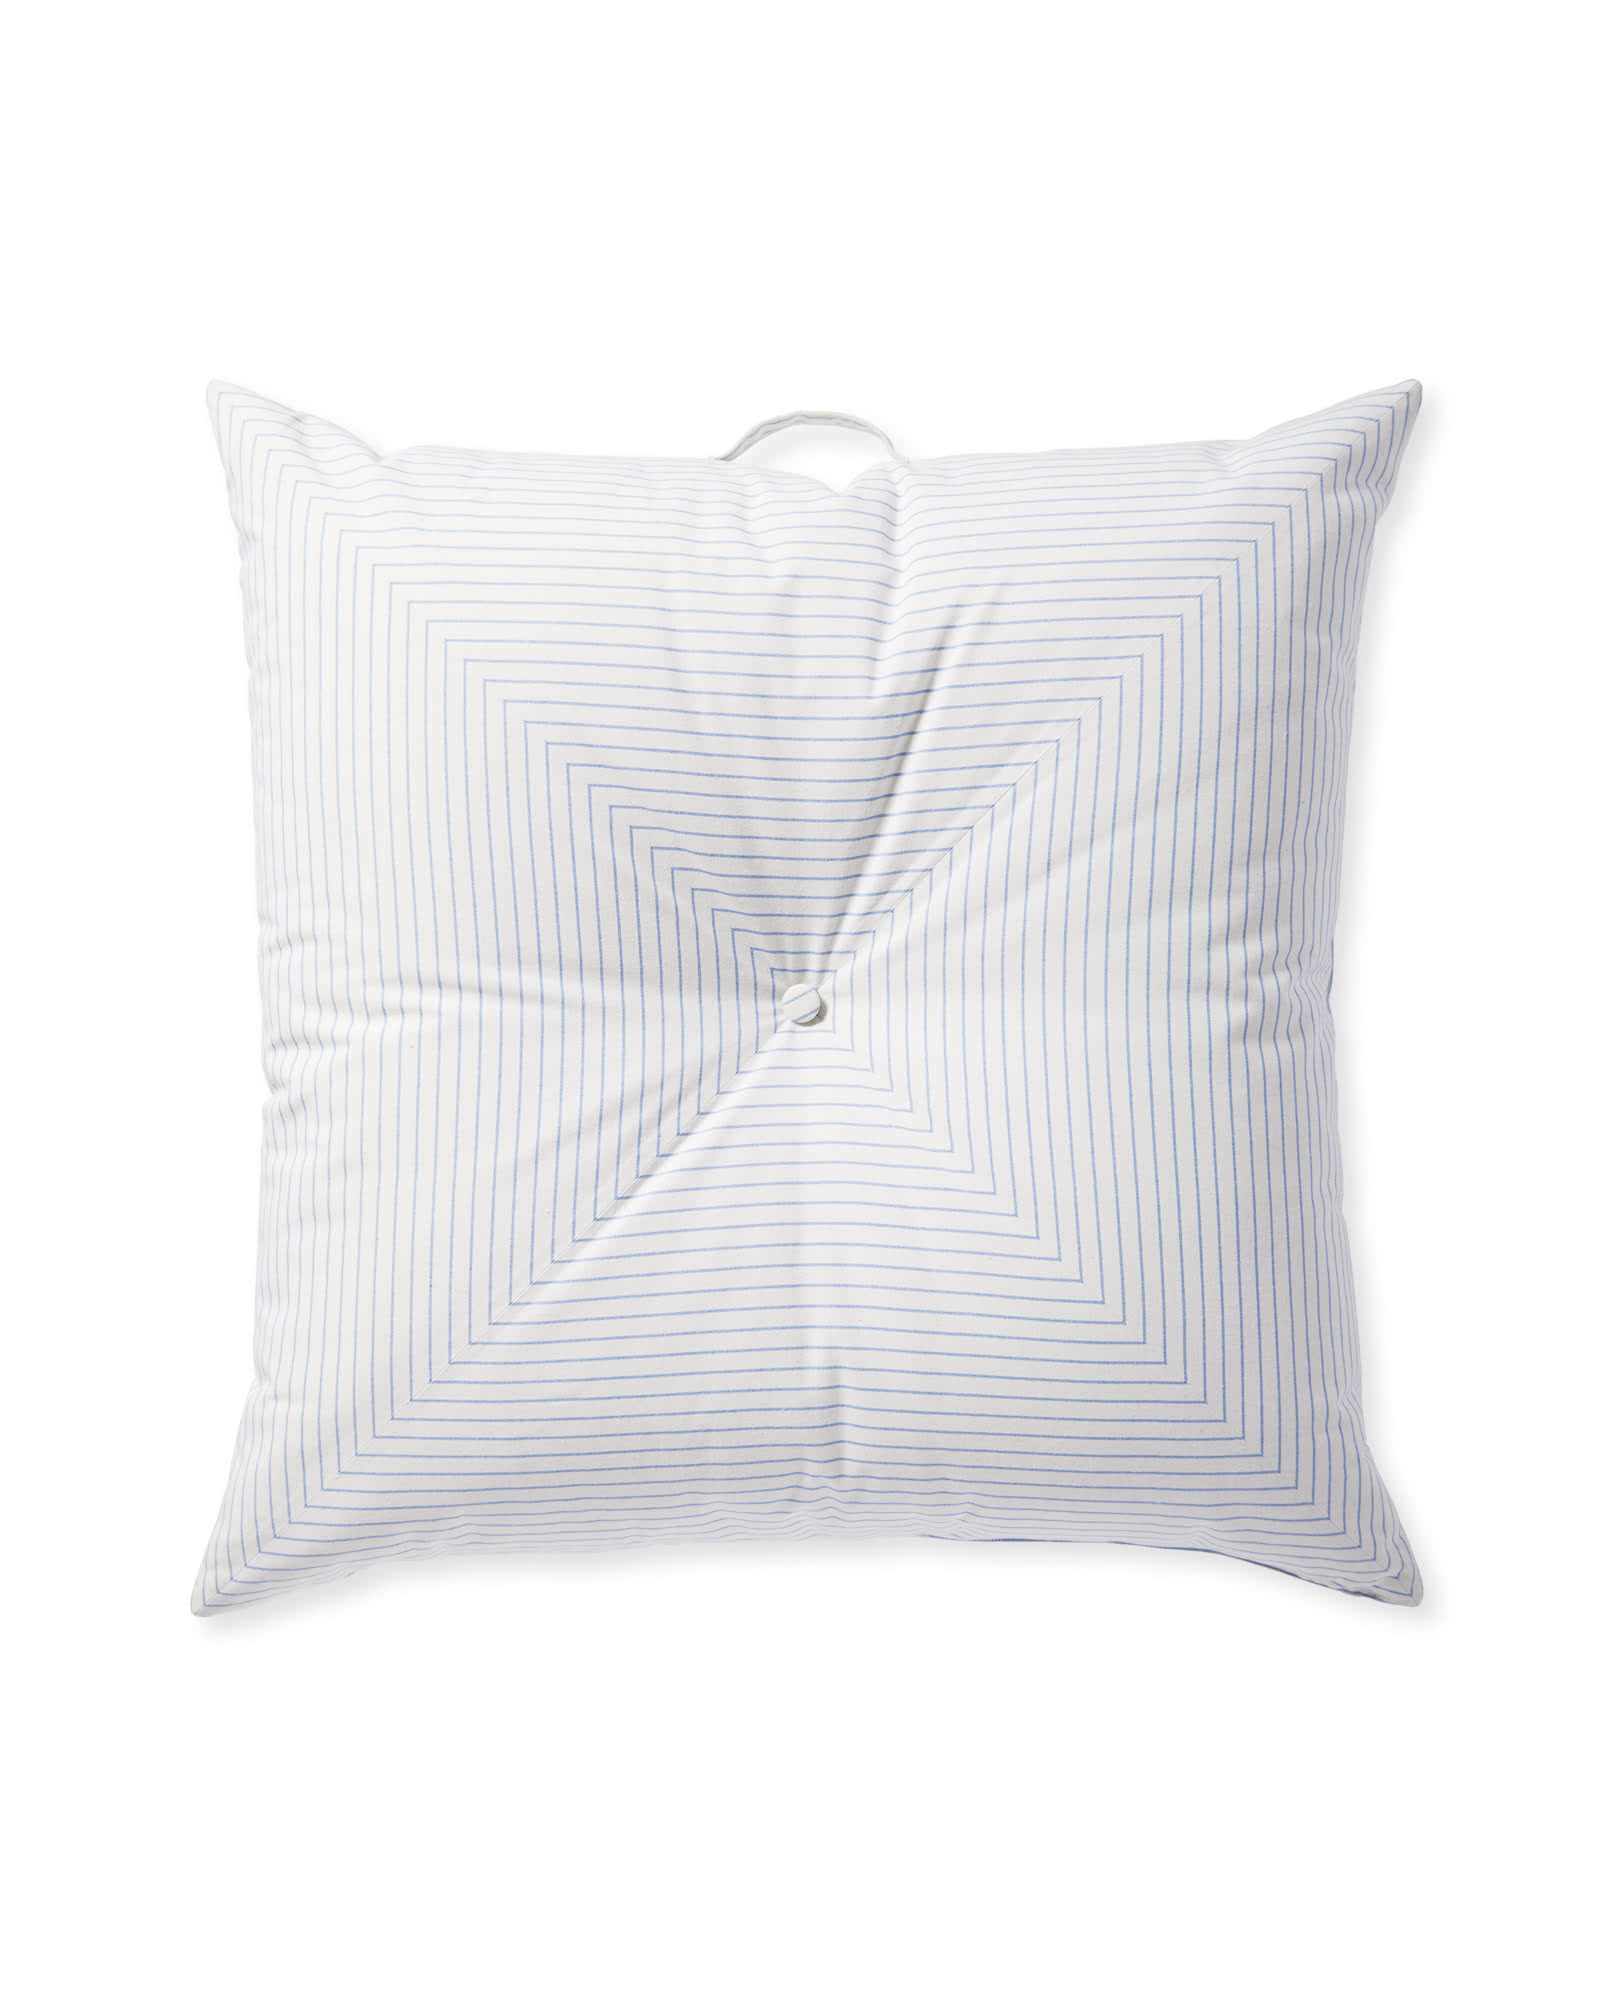 Harbour Island Floor Pillow, Chambray Stripe